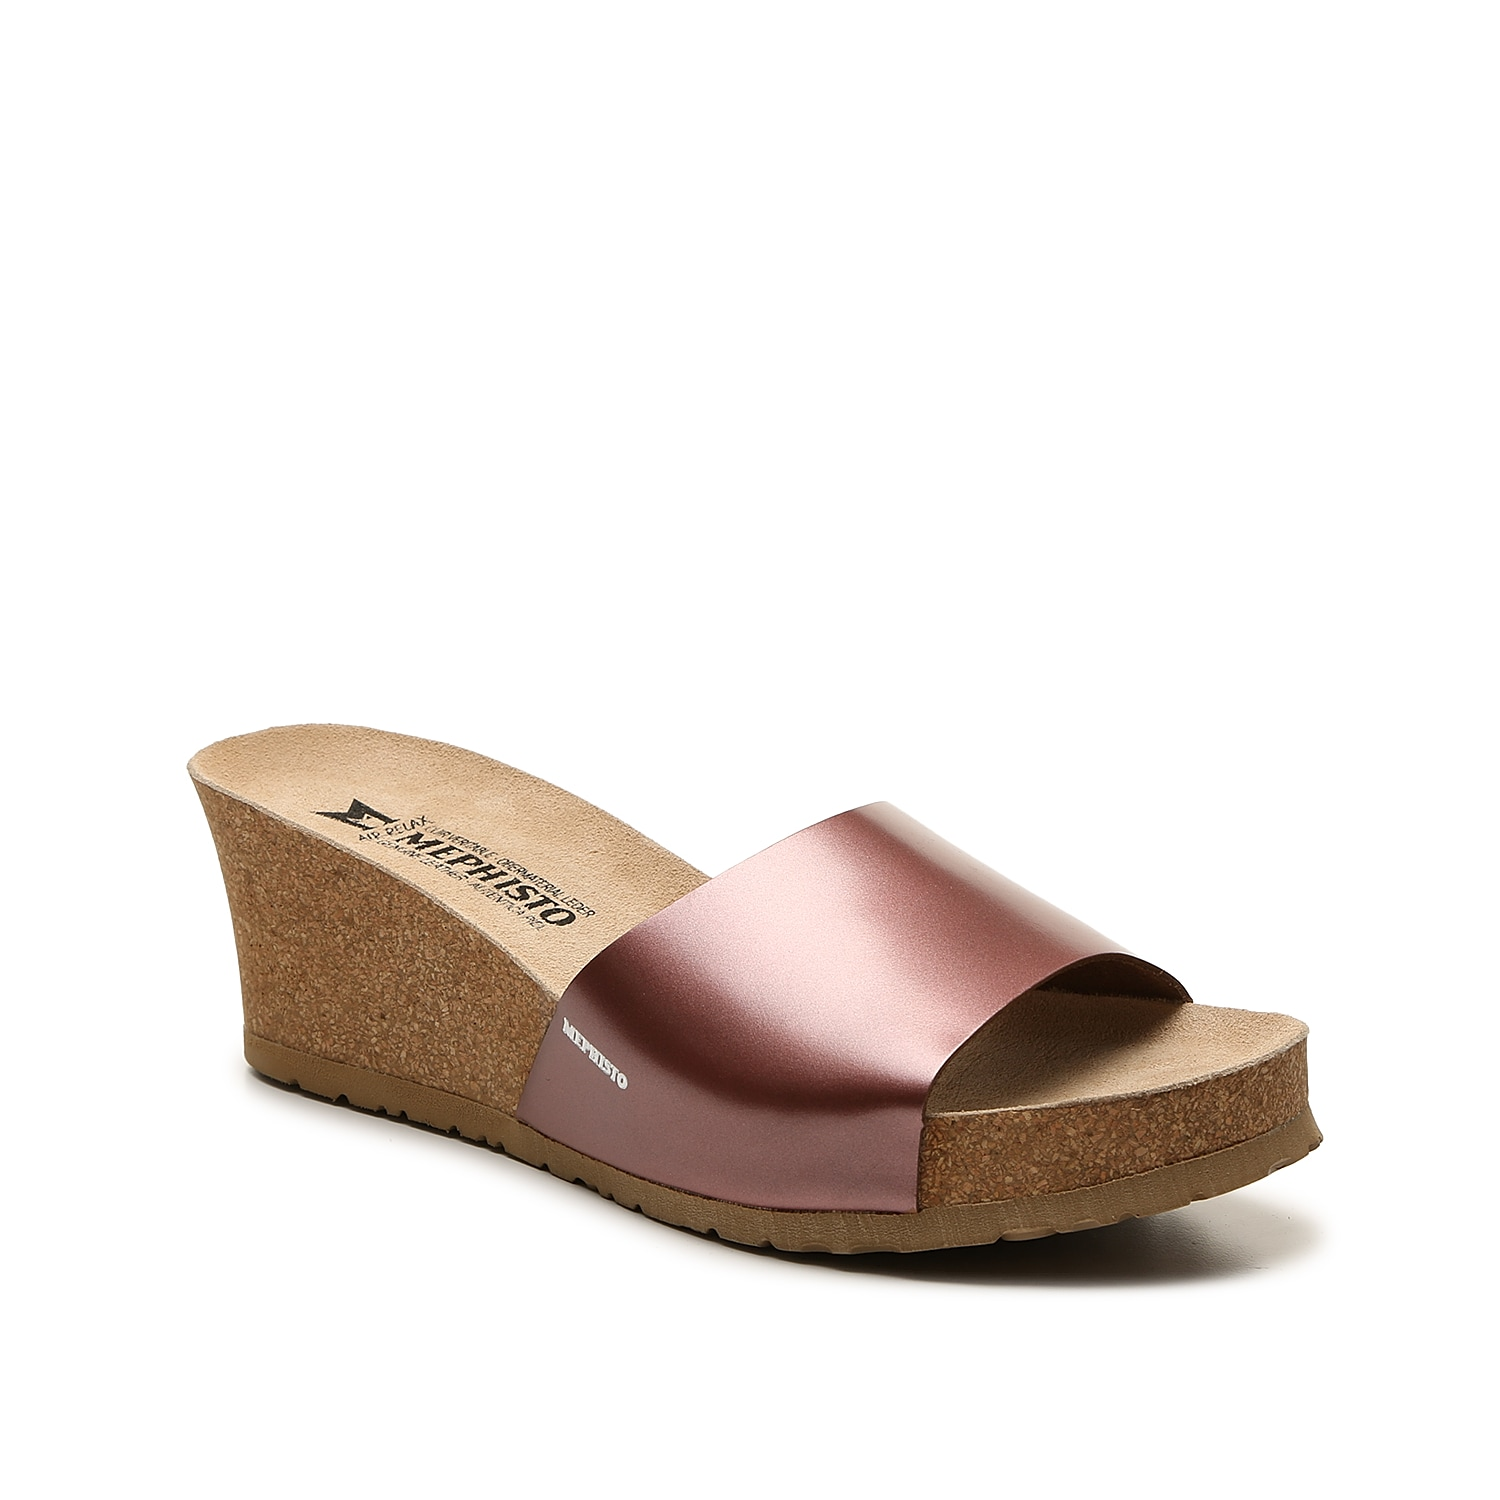 Take comfortable struts with the Lise wedge sandal from Mephisto. This silhouette is fashioned with a metallic leather upper and genuine leather footbed that allows you to walk around with ease.